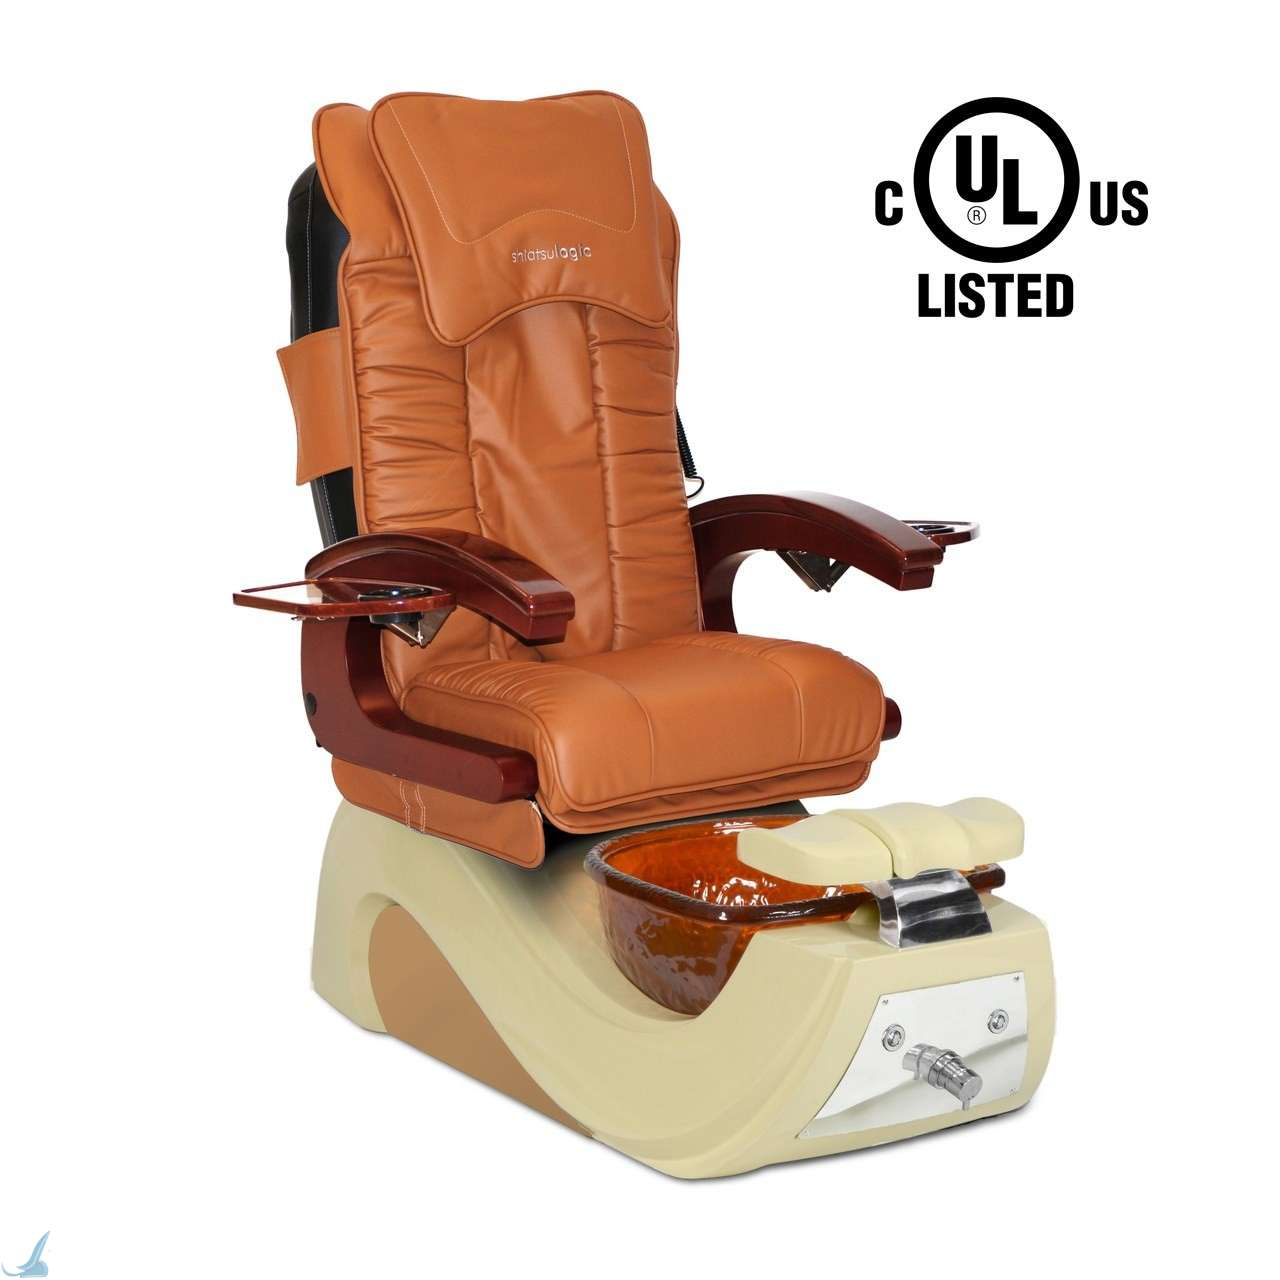 Pedicure Chairs No Plumbing Needed Pedicure Chair For Sale Ovationspas